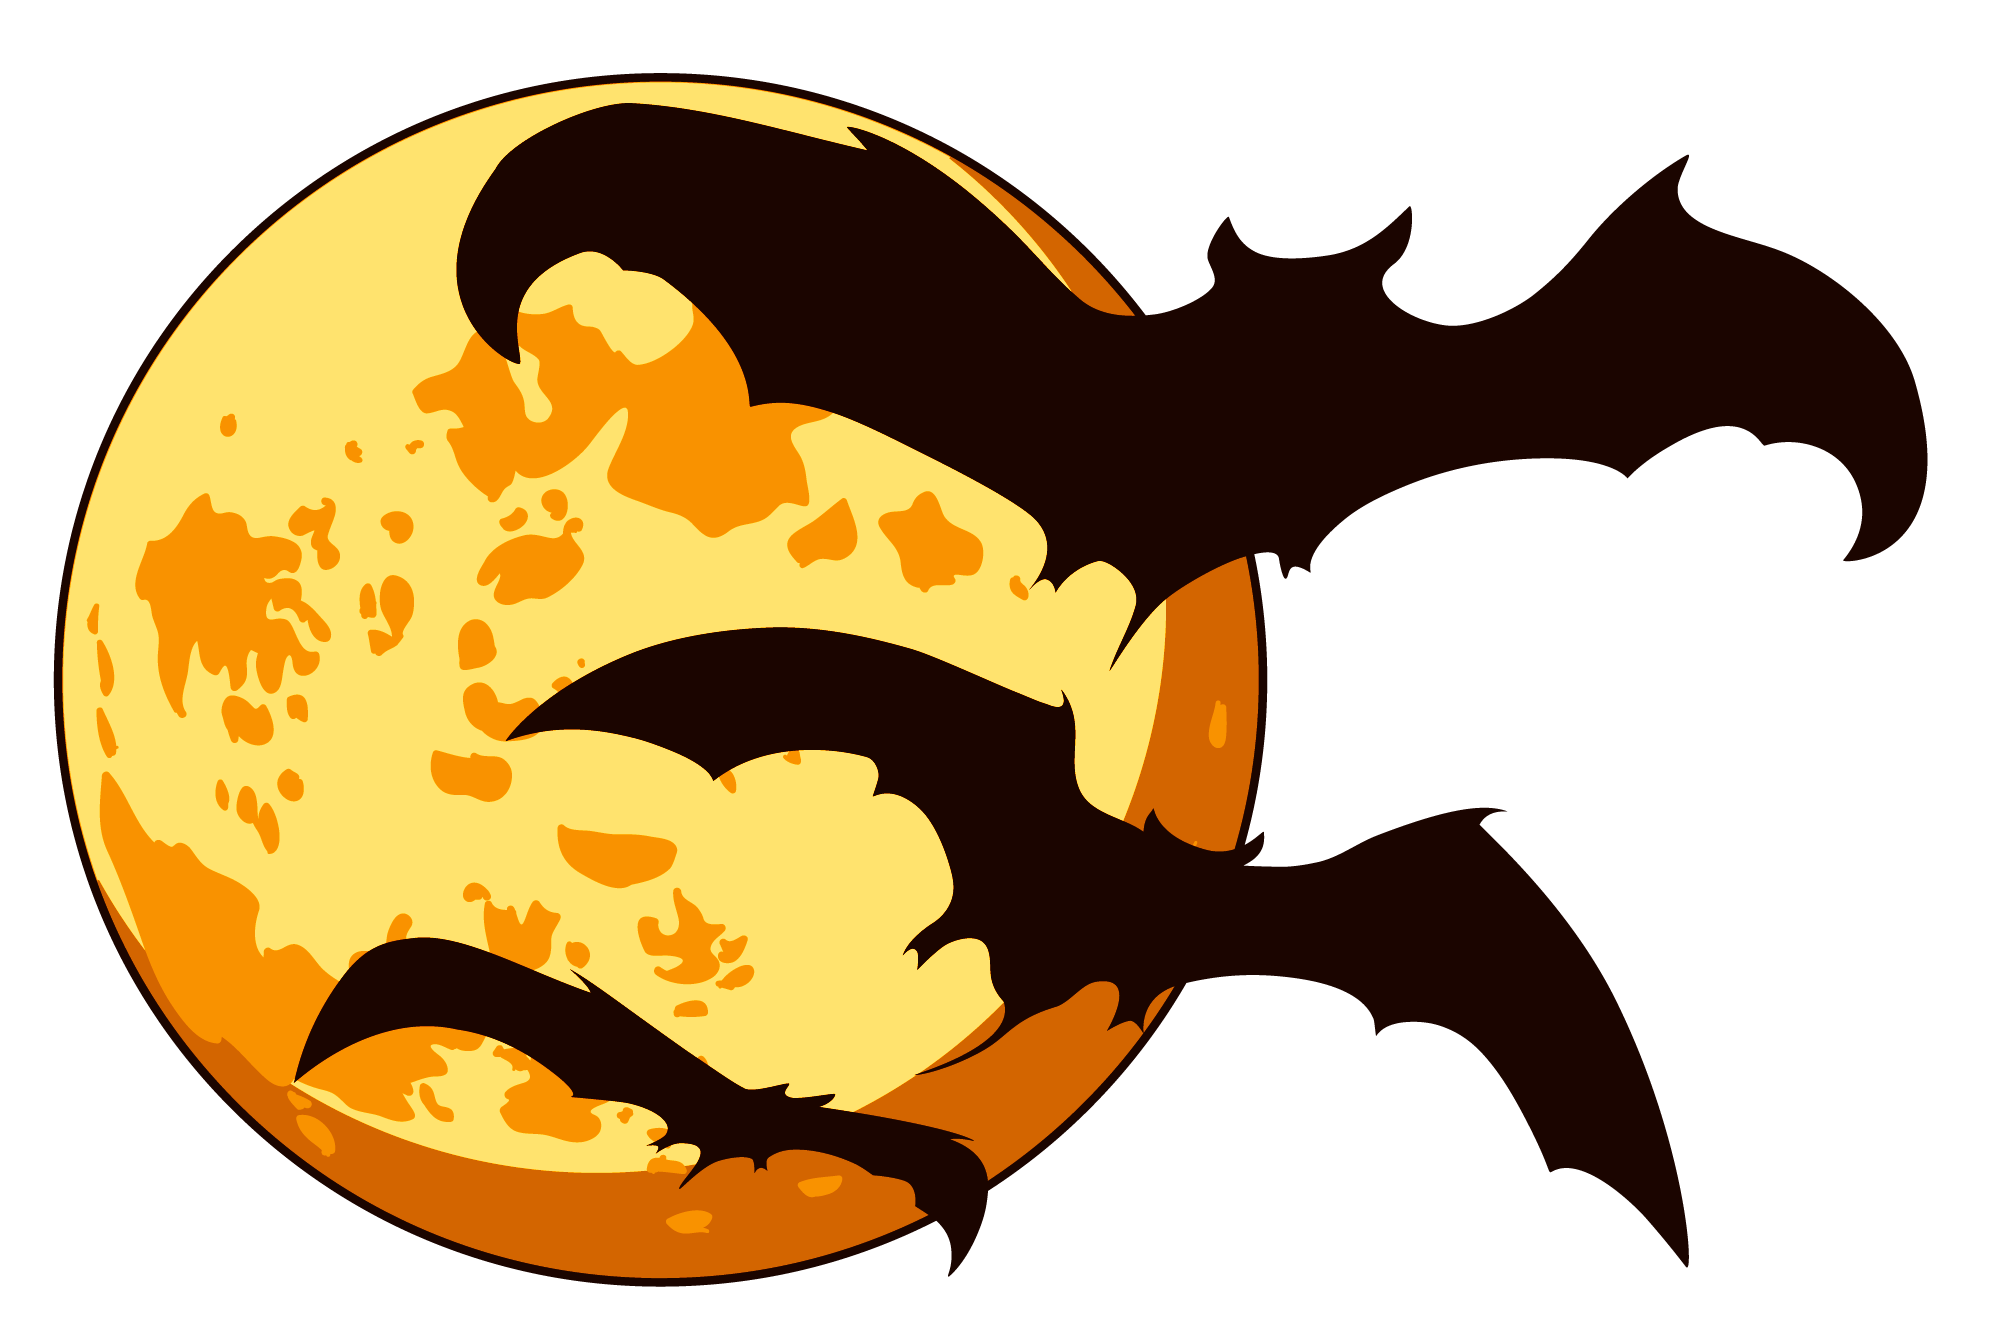 Microsoft clipart halloween vector transparent Orange Halloween Moon with Bats PNG Clipart | Gallery Yopriceville ... vector transparent